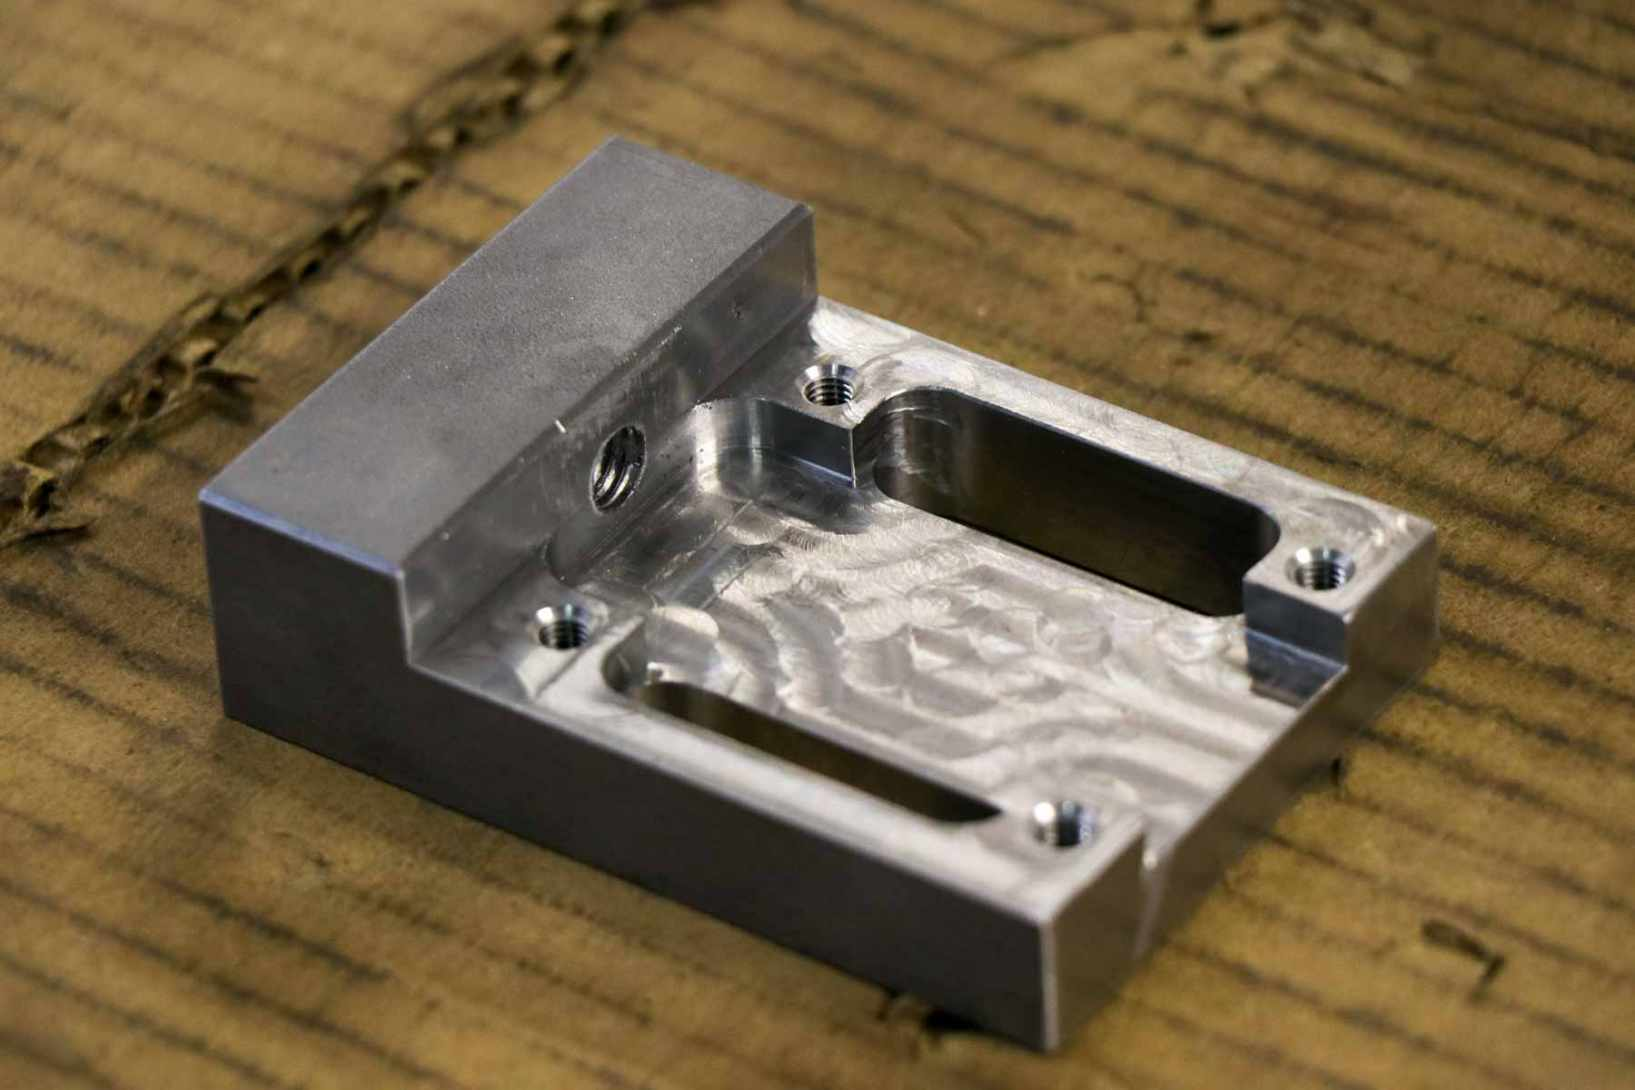 Prototyping metal and plastic parts